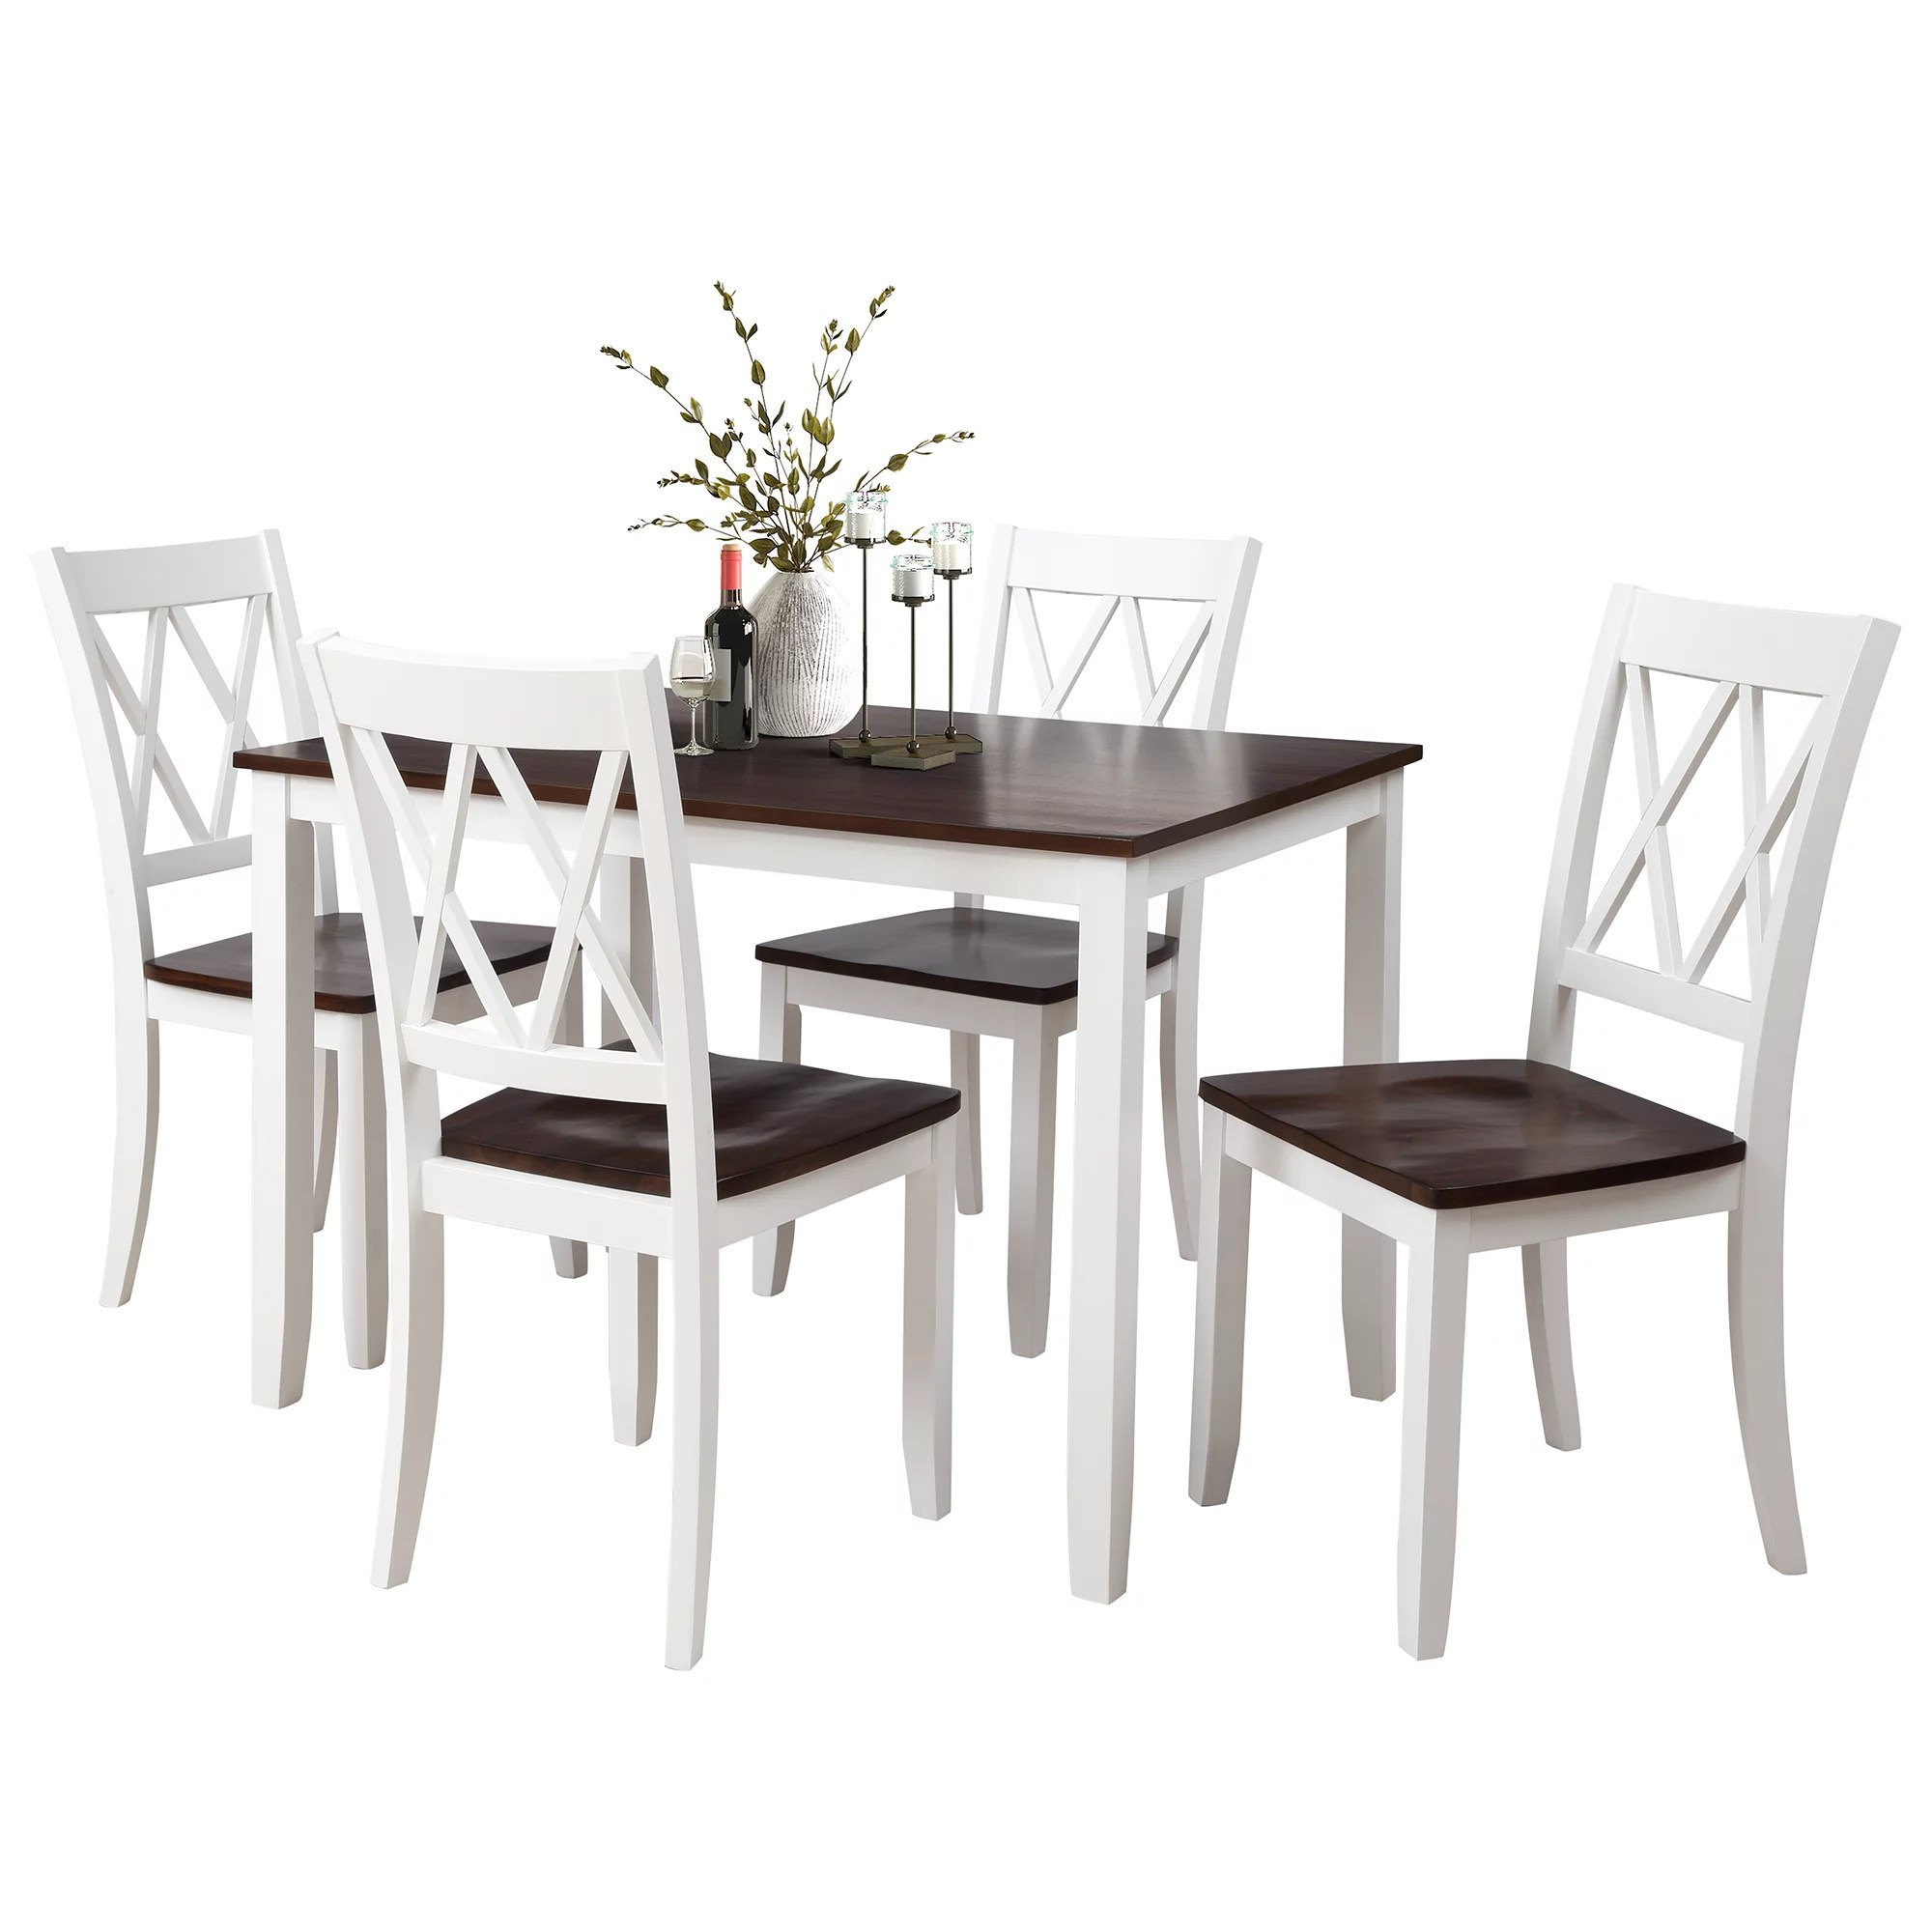 clearance dining table set with 4 chairs 5 piece wooden on dining room sets on clearance id=14769